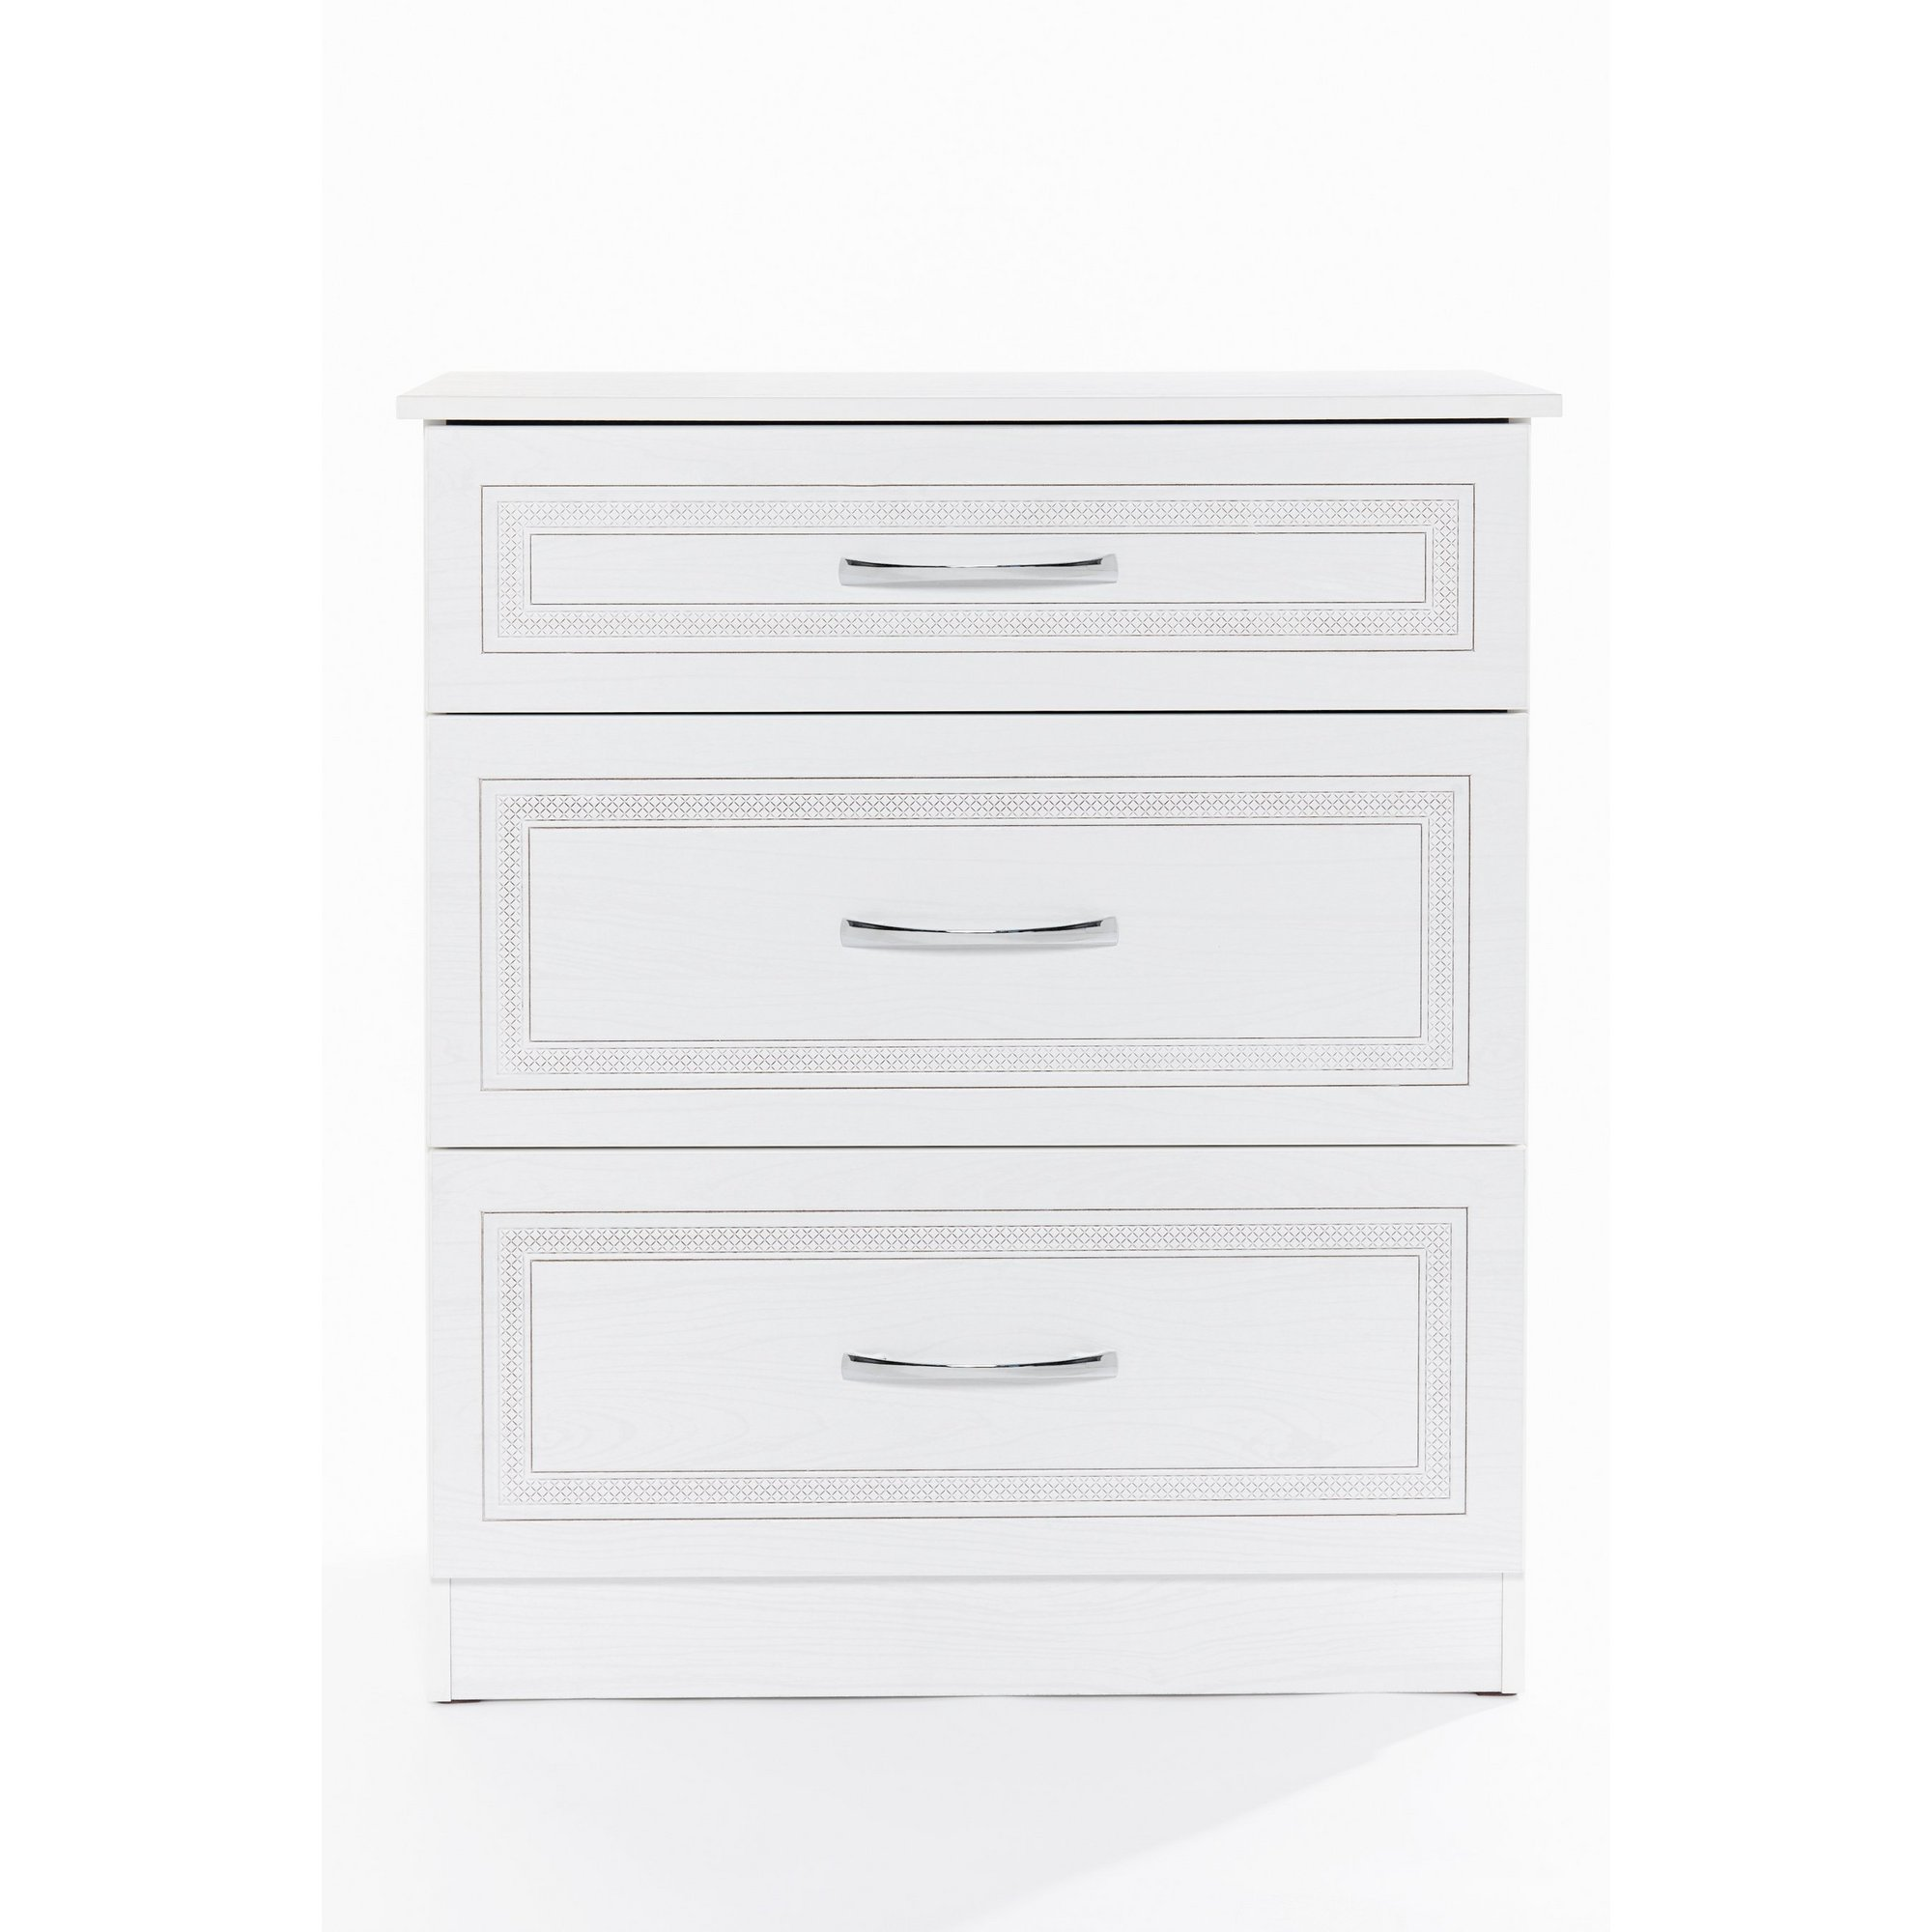 Image of Dorset 3 Drawer Ready Assembled Chest of Drawers